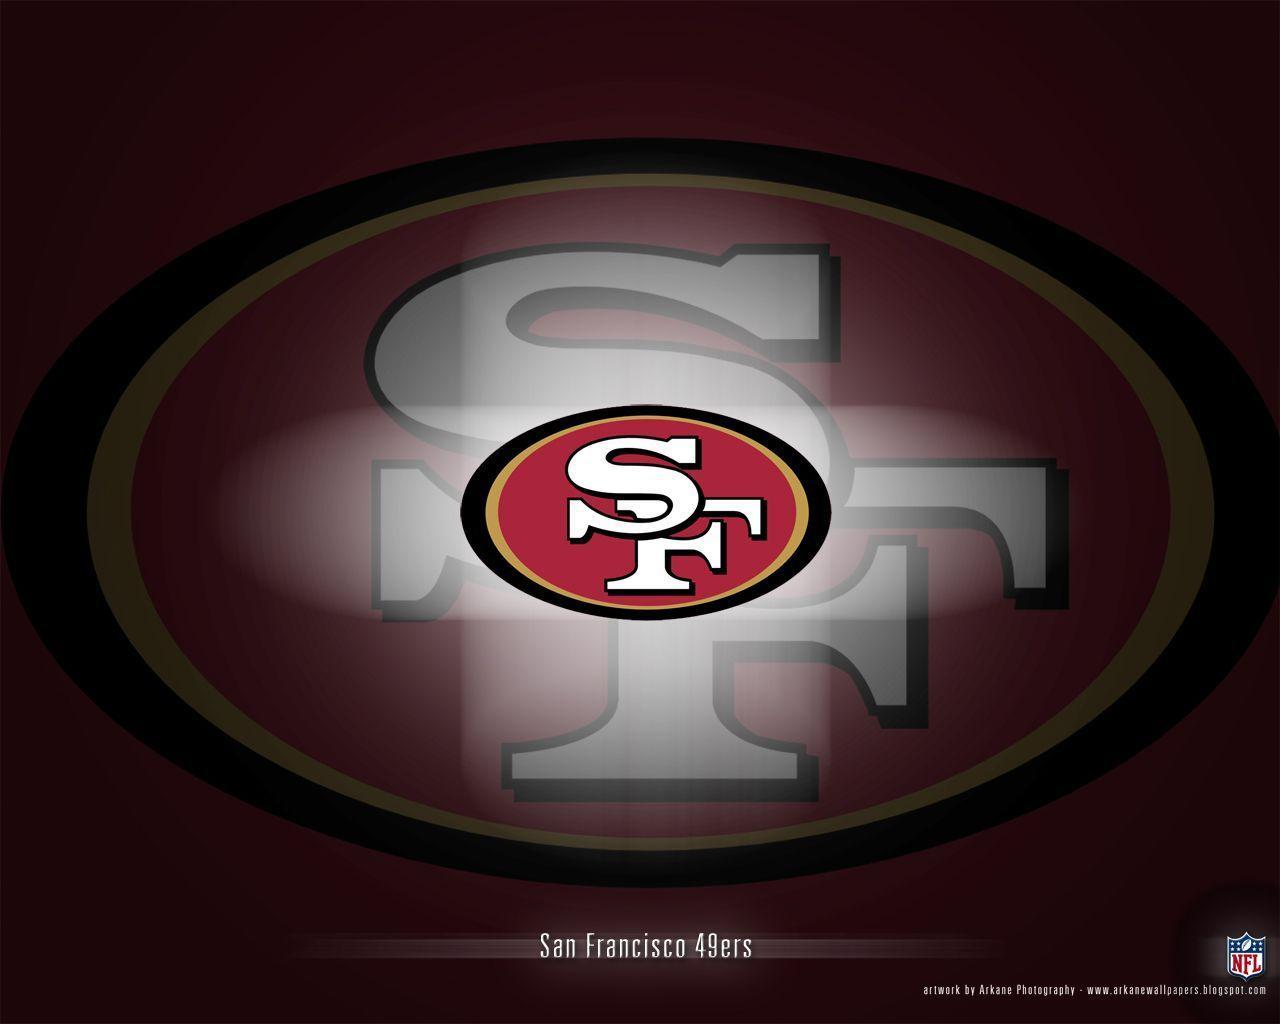 san francisco 49ers logo wallpaper | Paon The Fly